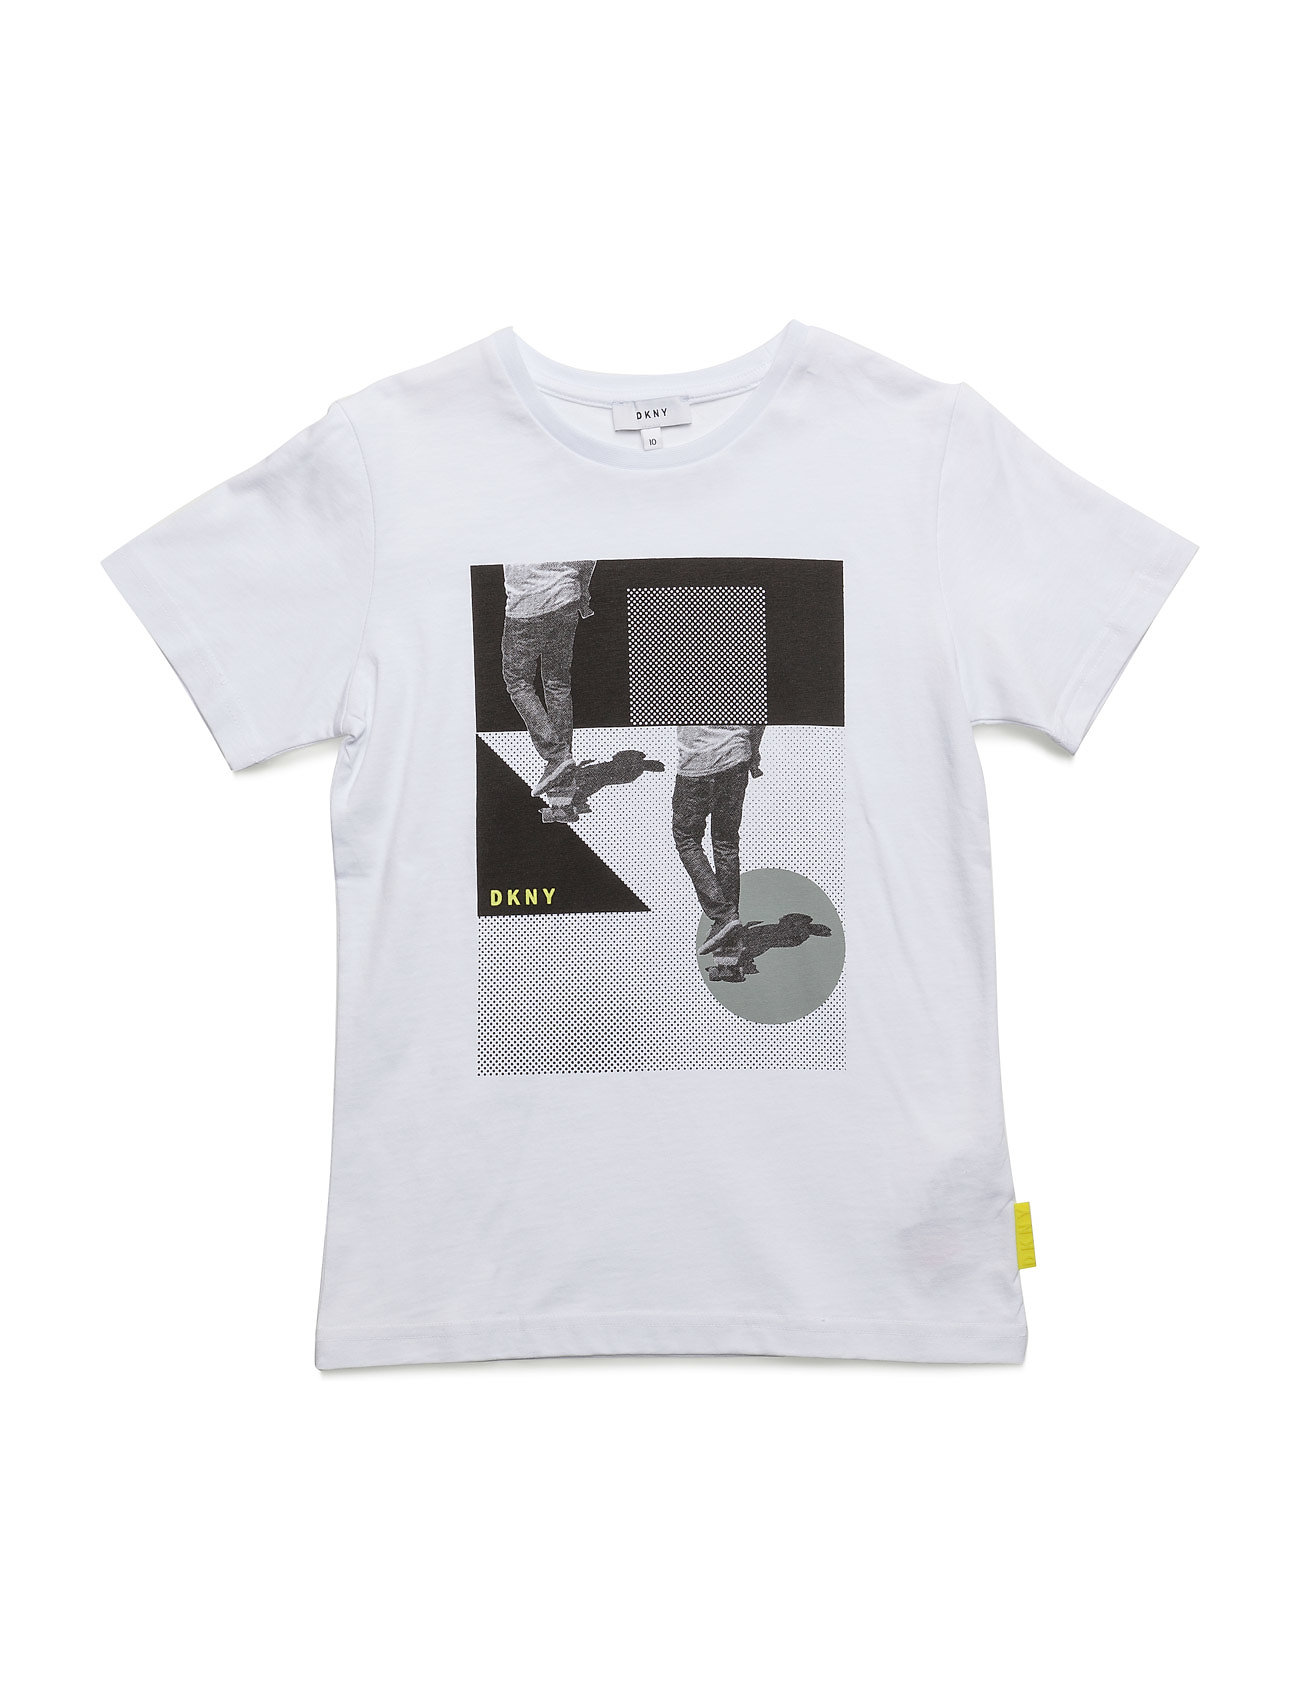 Short Sleeves Tee-Shirt thumbnail